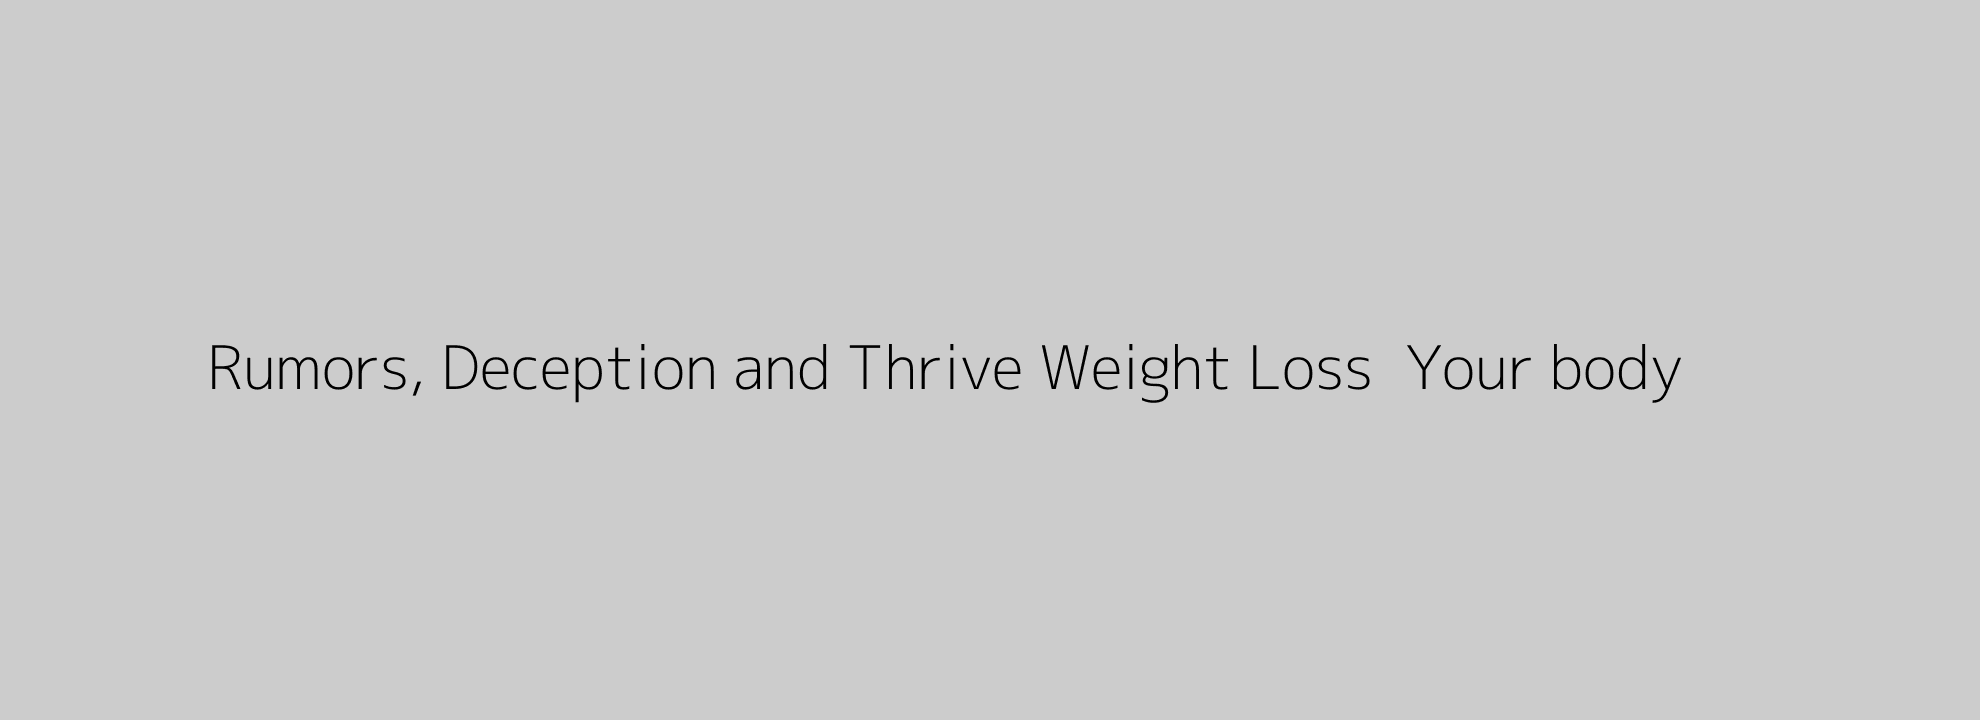 Rumors, Deception and Thrive Weight Loss  Your body